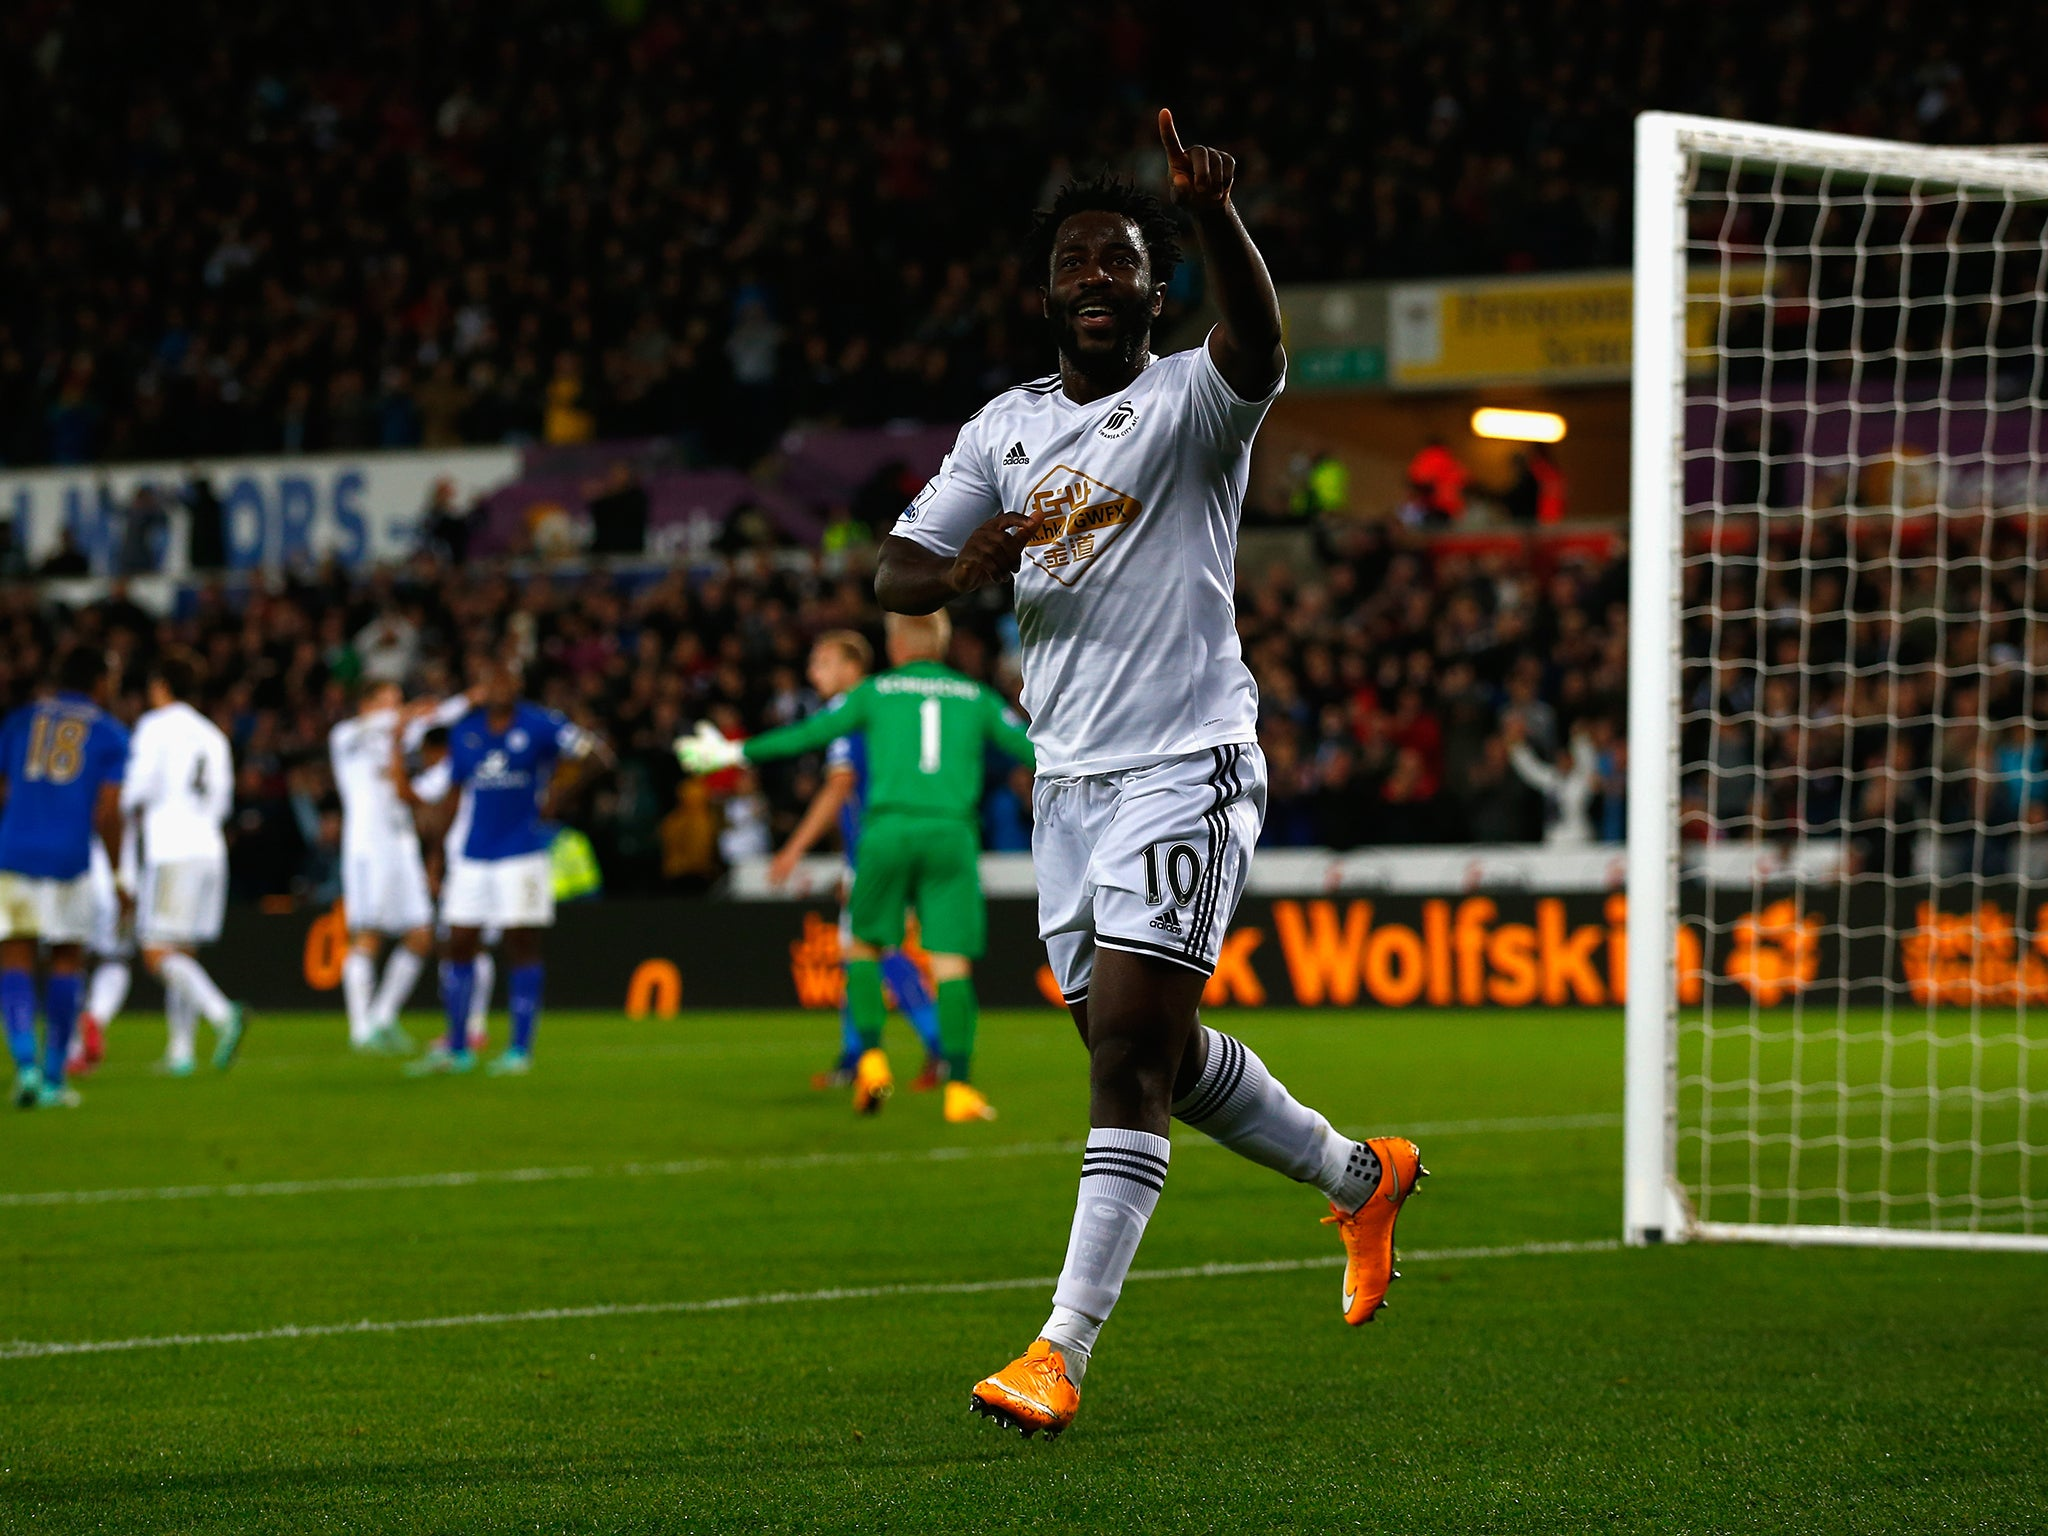 Everton vs swansea betting preview sell 1000 bitcoins